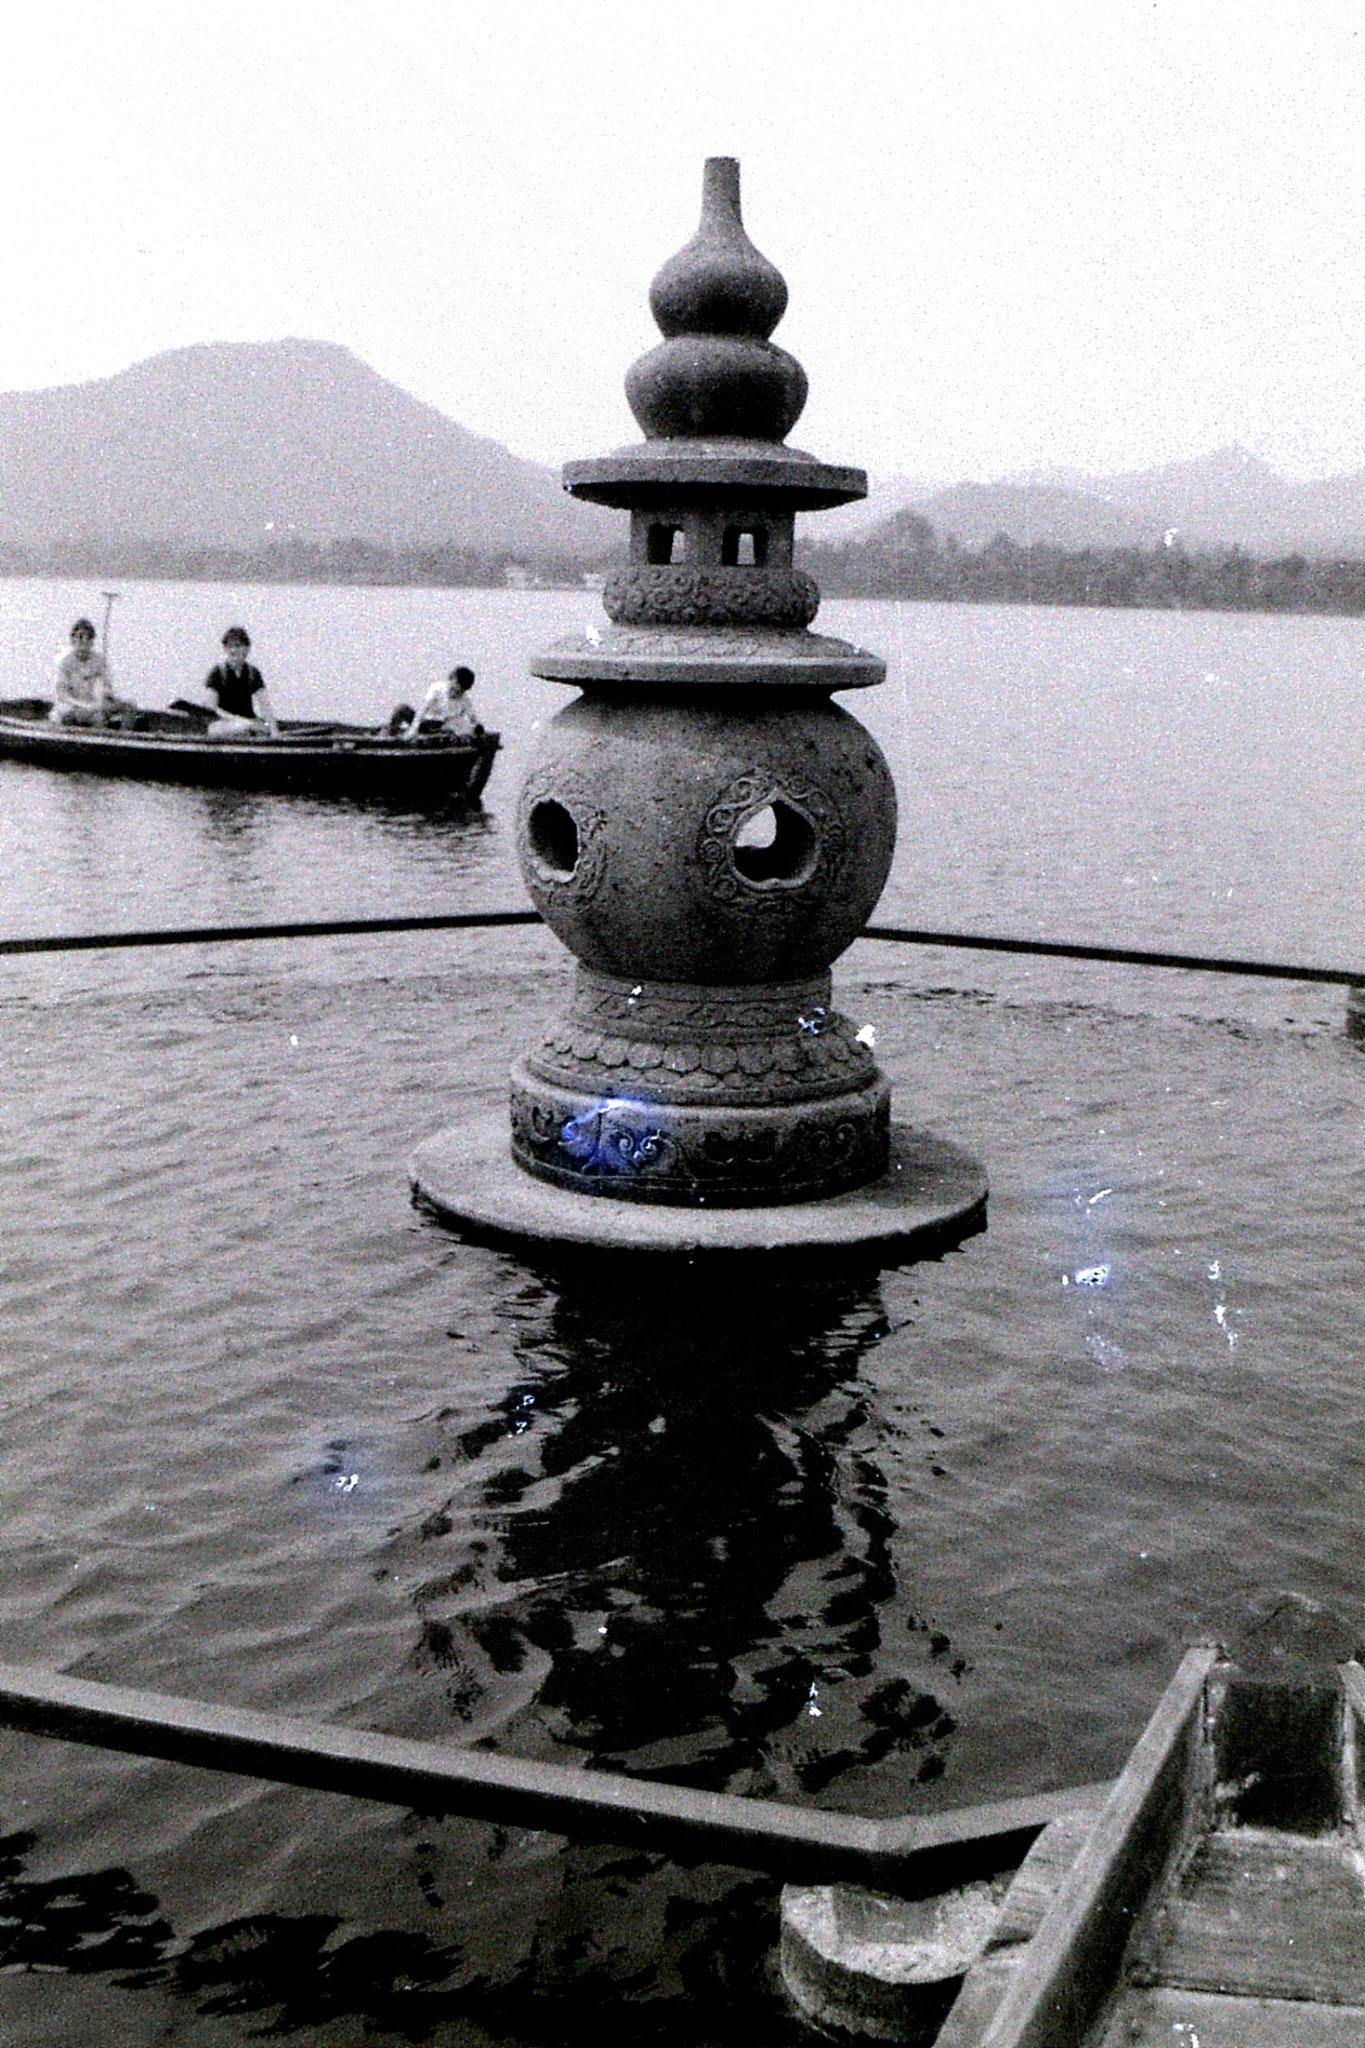 19/6/1989: 35: group visit to West Lake